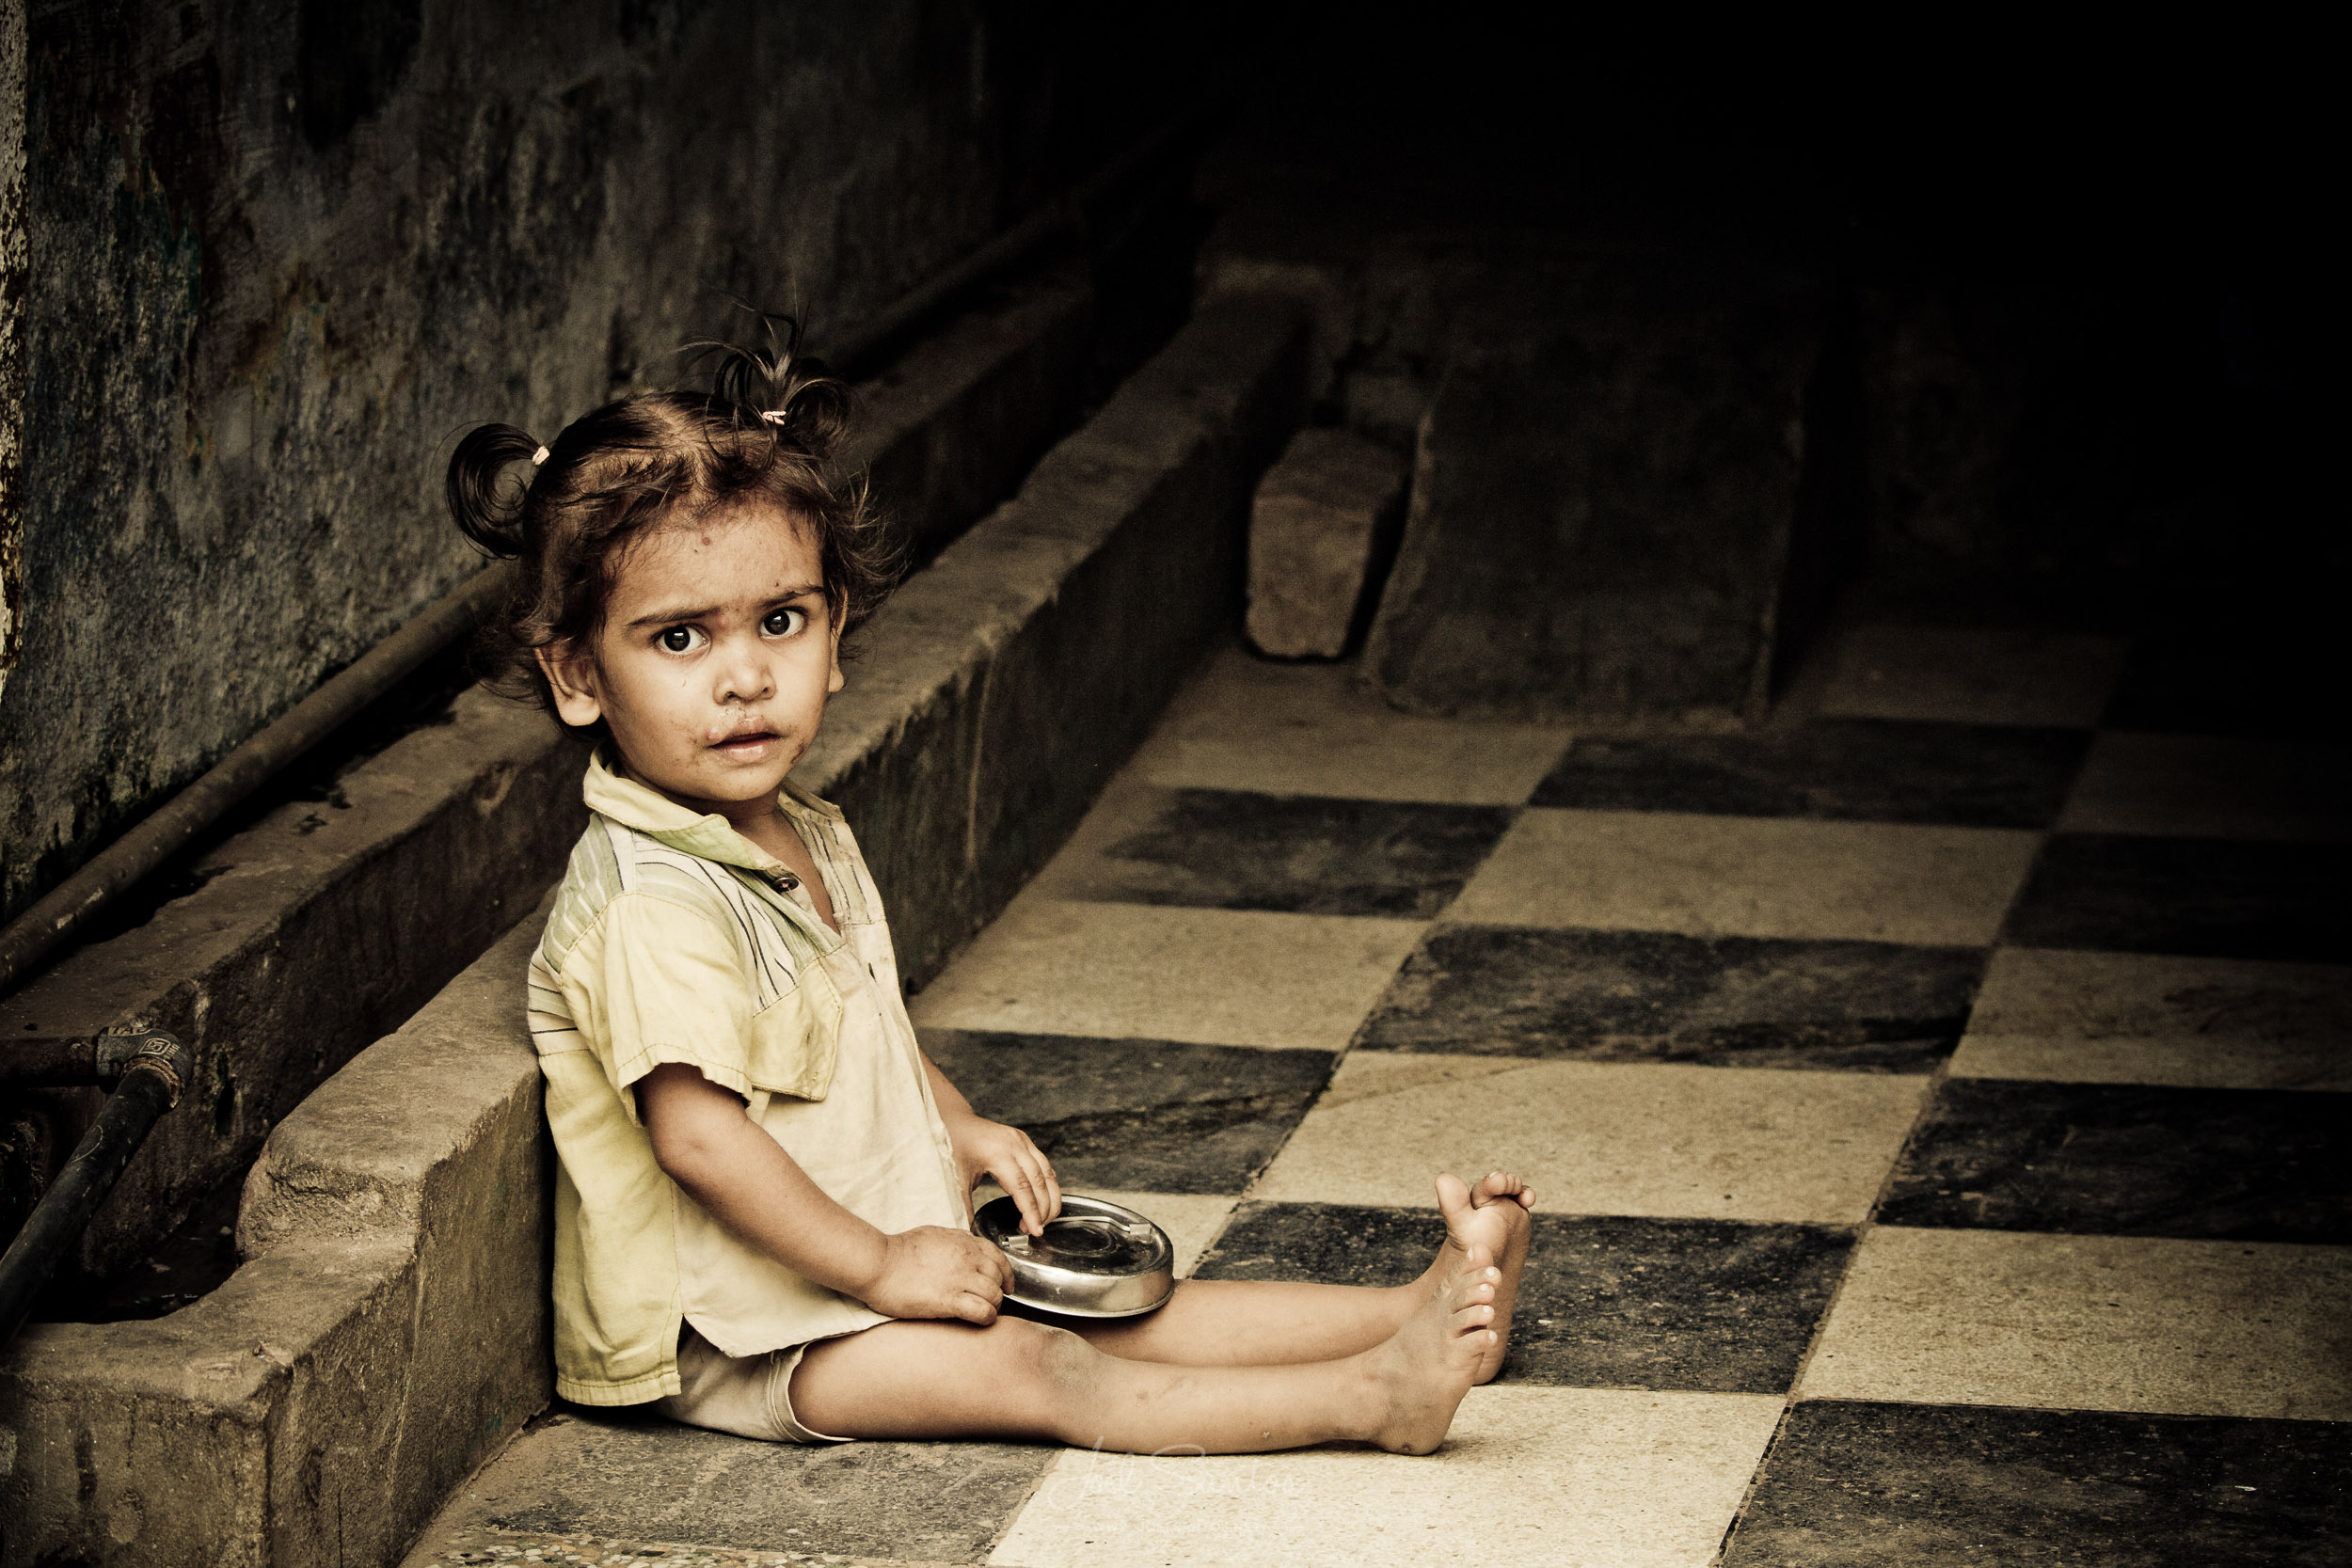 Indian Girl on chess floor, Jaipur, India